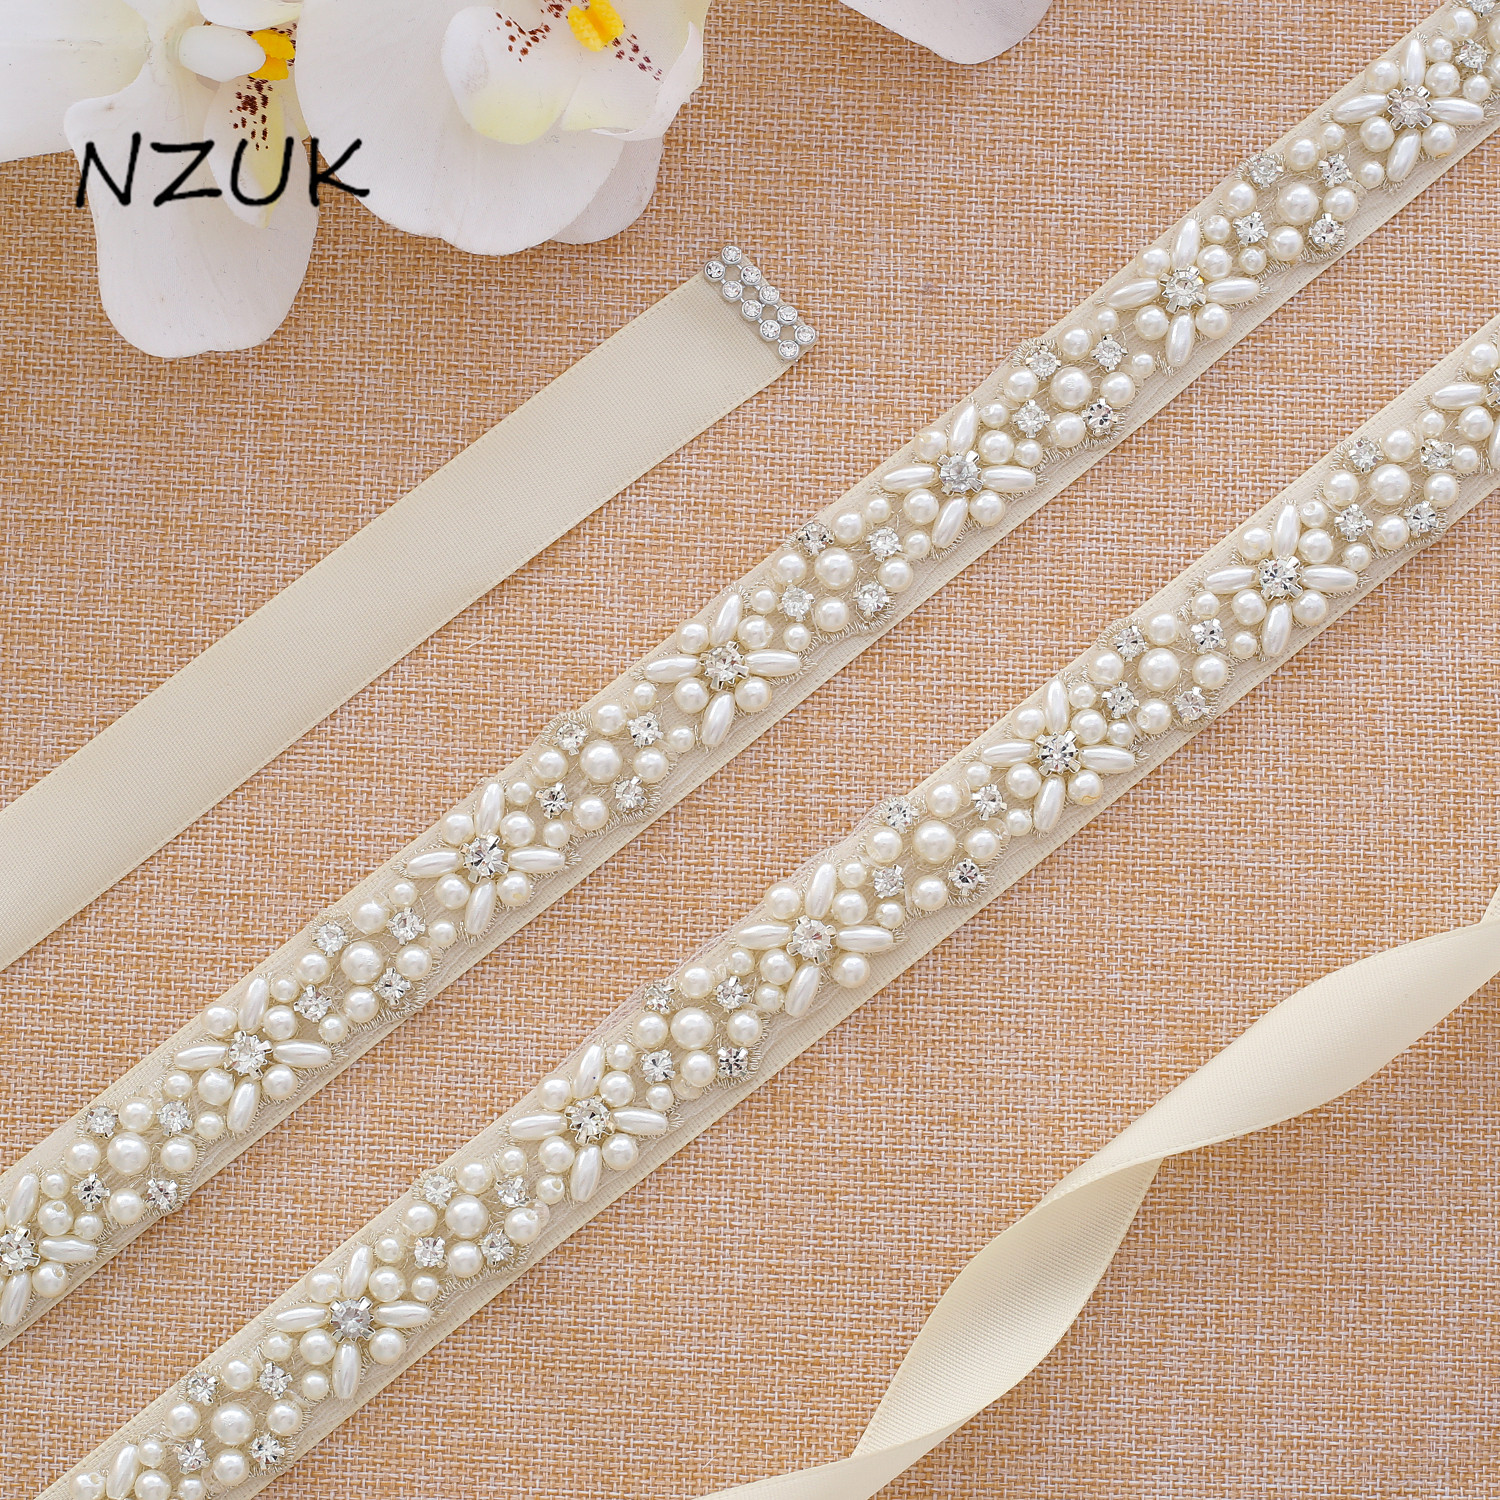 Crystal Bridal Sash Rhinestones Pearls Wedding Belt  Satin Bridal Belt And Sash For Wedding Decoration Y133S